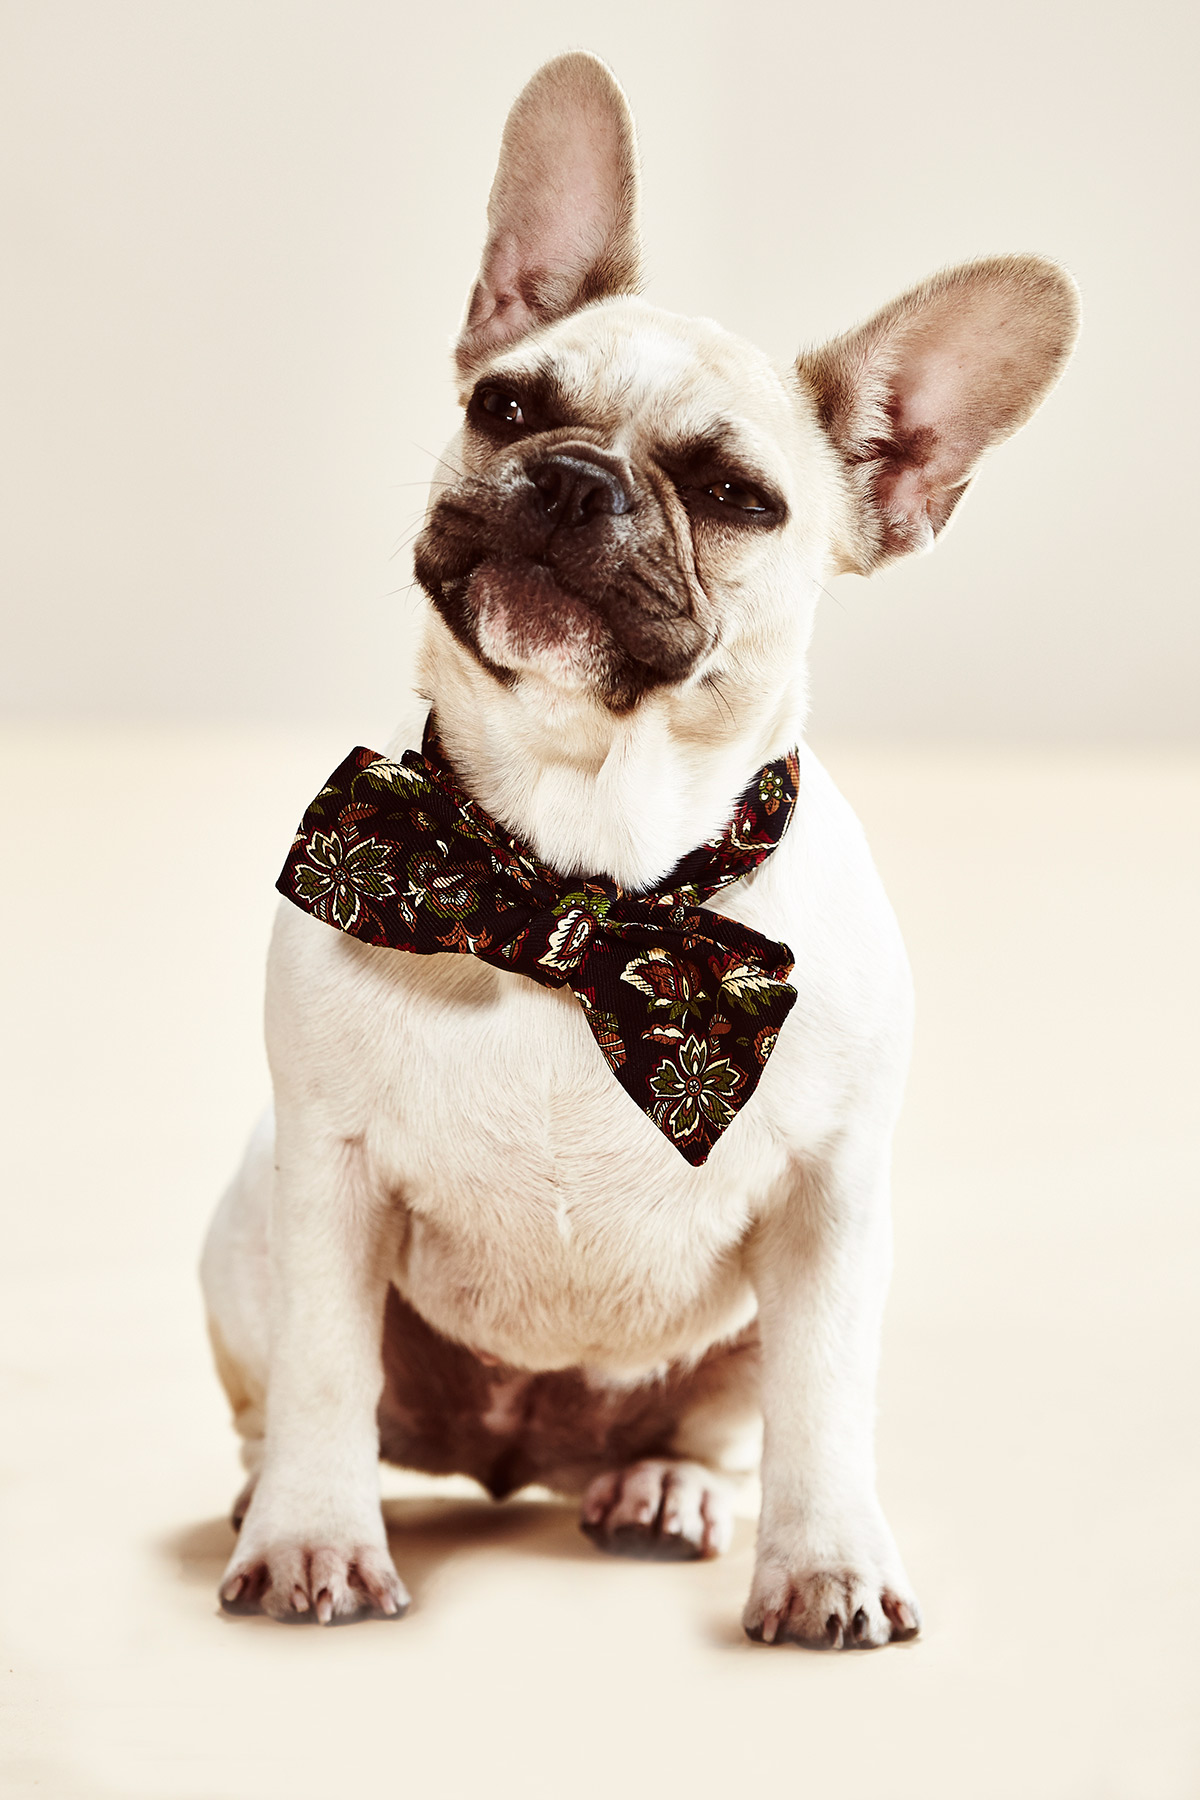 Viva_French-Bulldog_120